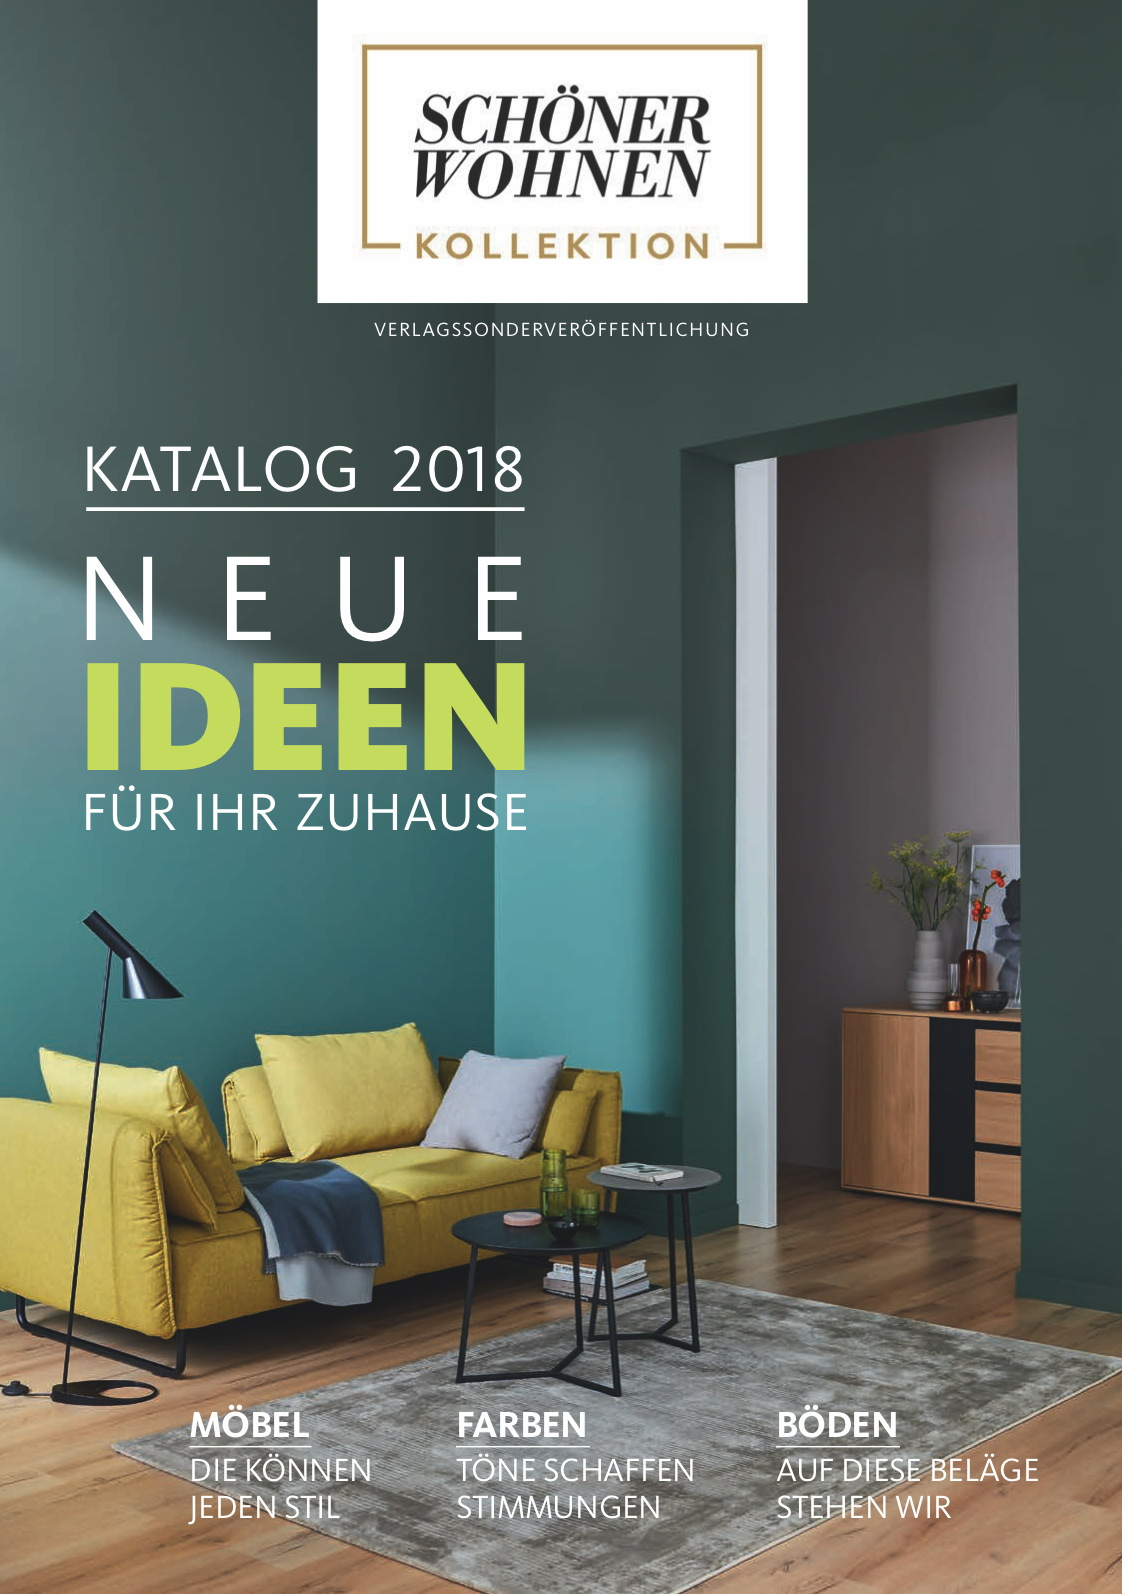 neues von der sch ner wohnen kollektion das sind die trends 2018 presseportal. Black Bedroom Furniture Sets. Home Design Ideas